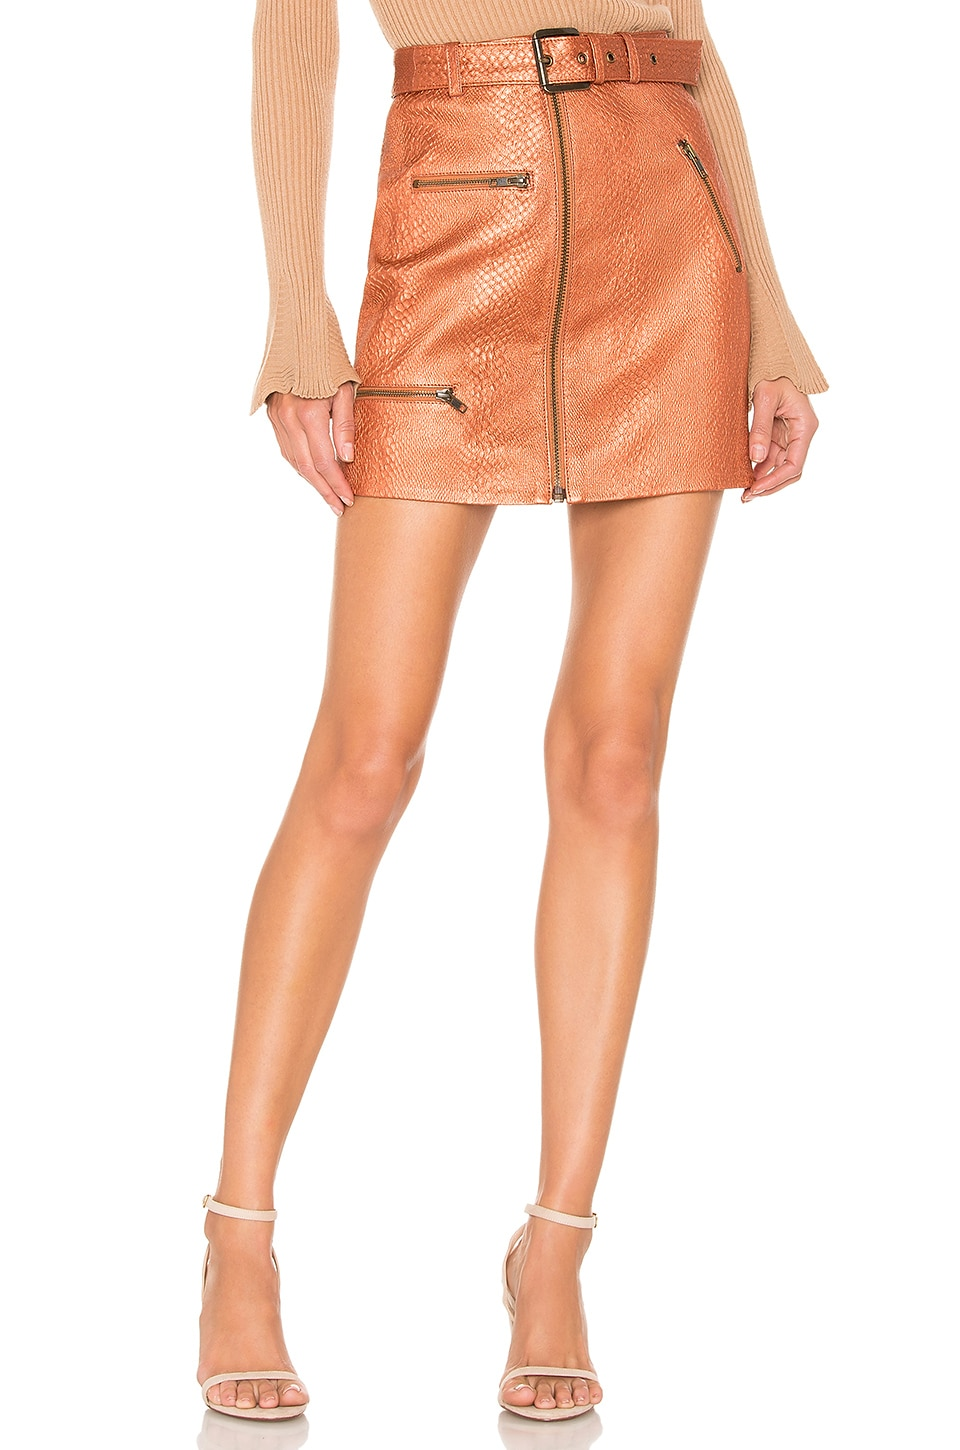 House of Harlow 1960 x REVOLVE Tori Skirt in Bronze